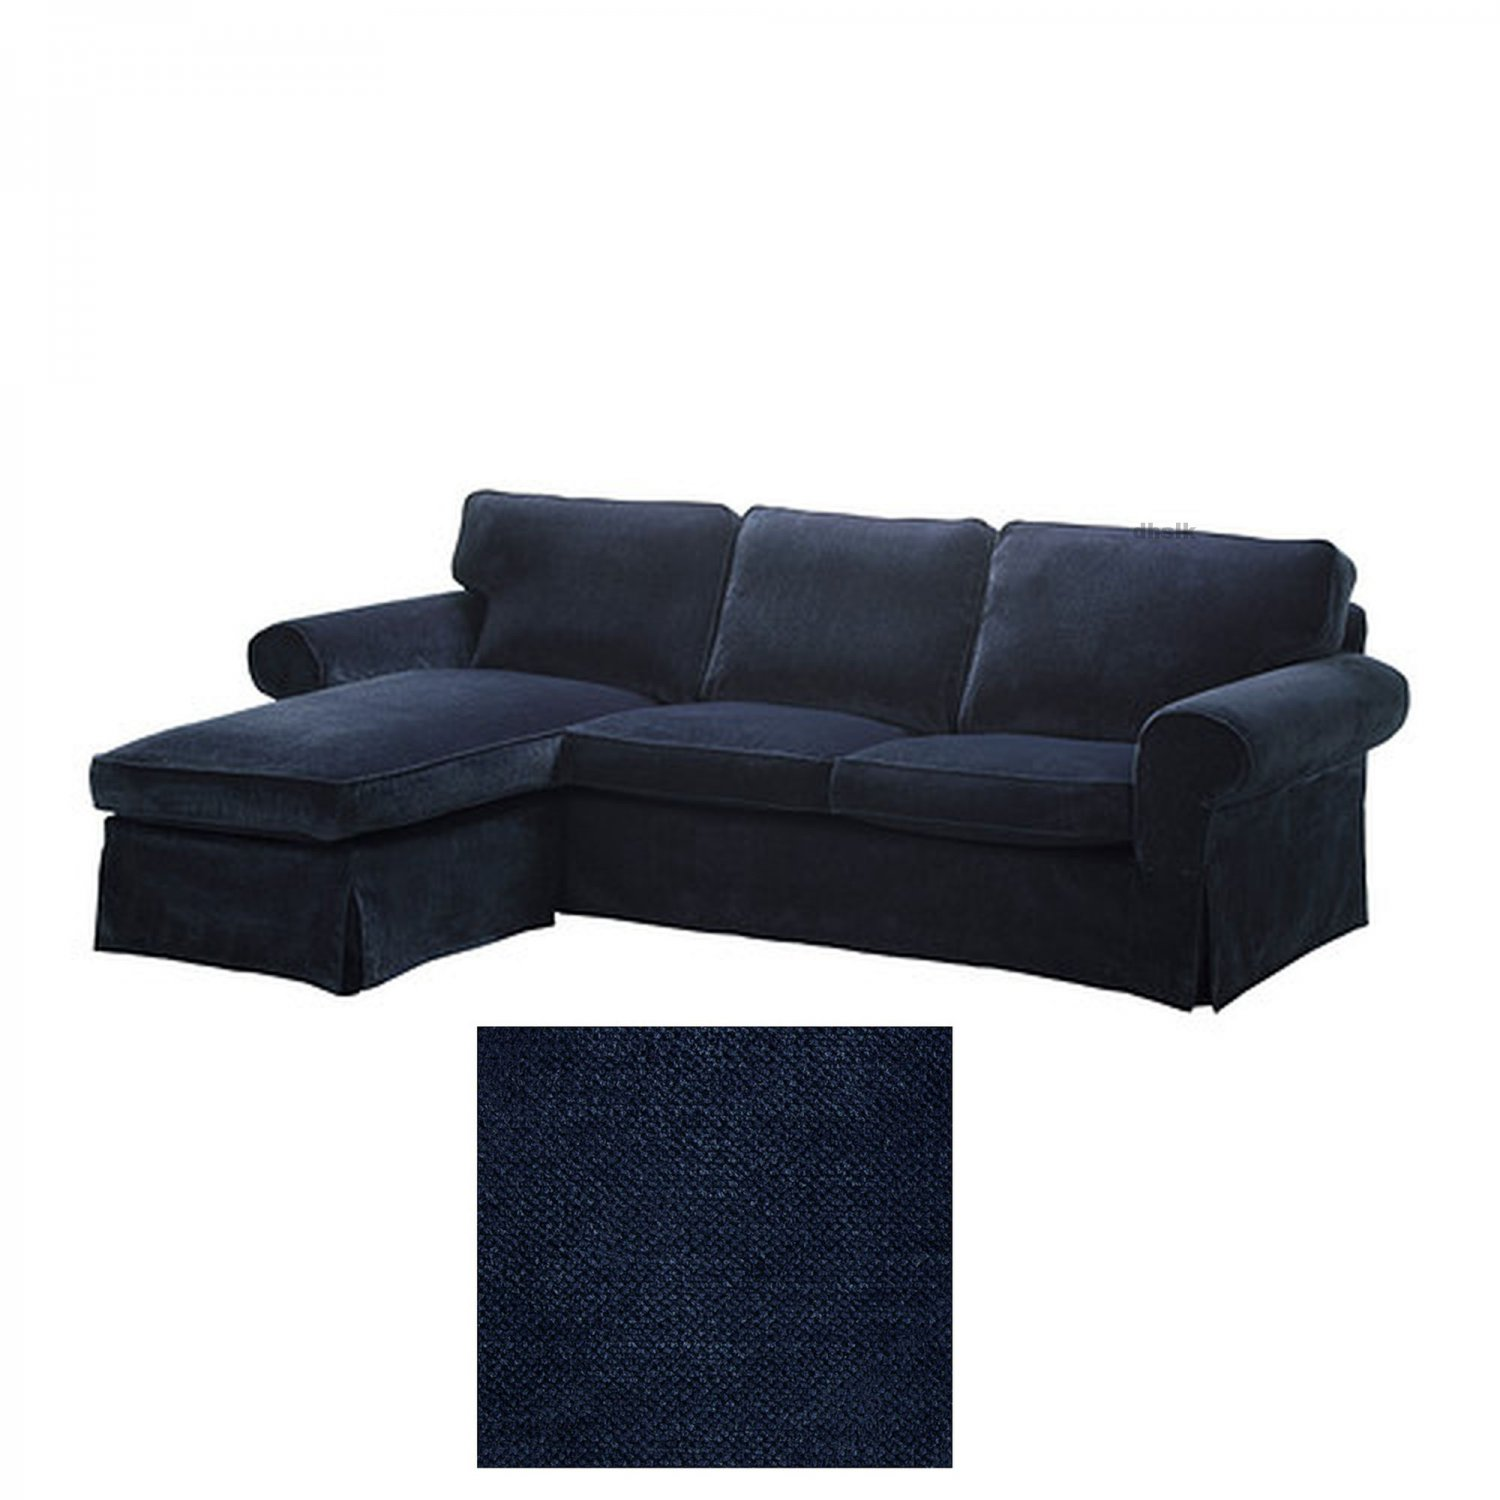 Ikea ektorp 2 seat loveseat sofa with chaise cover for Ikea sofa set